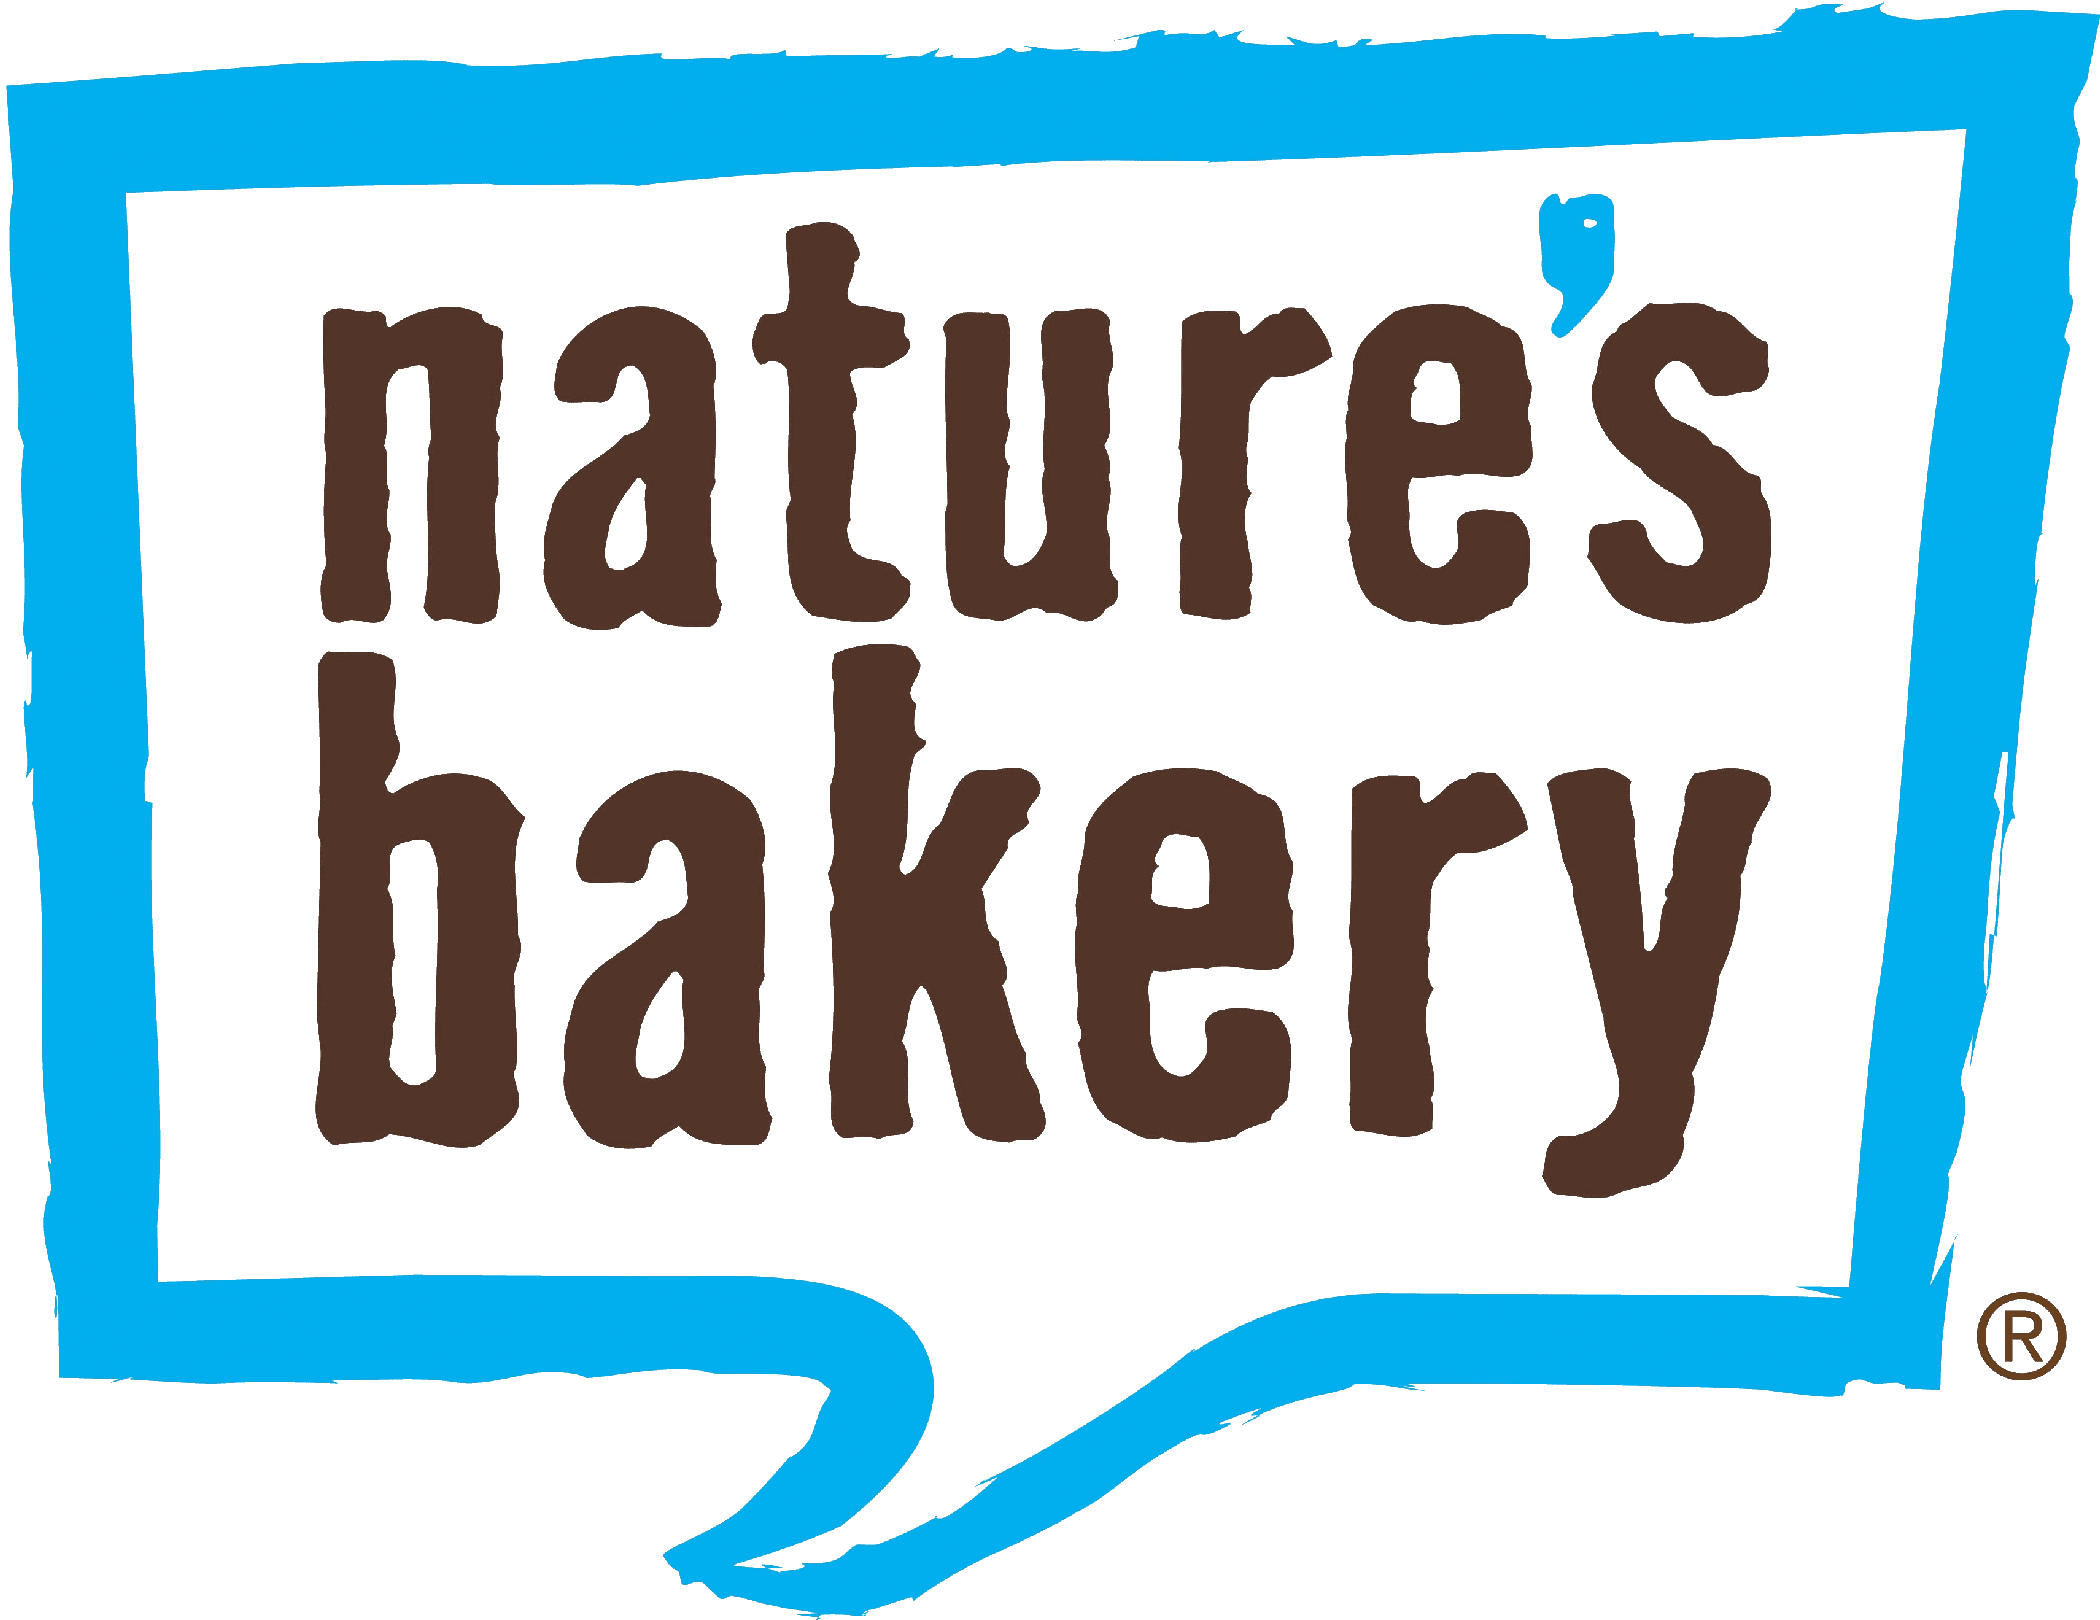 bakery logos free vector download